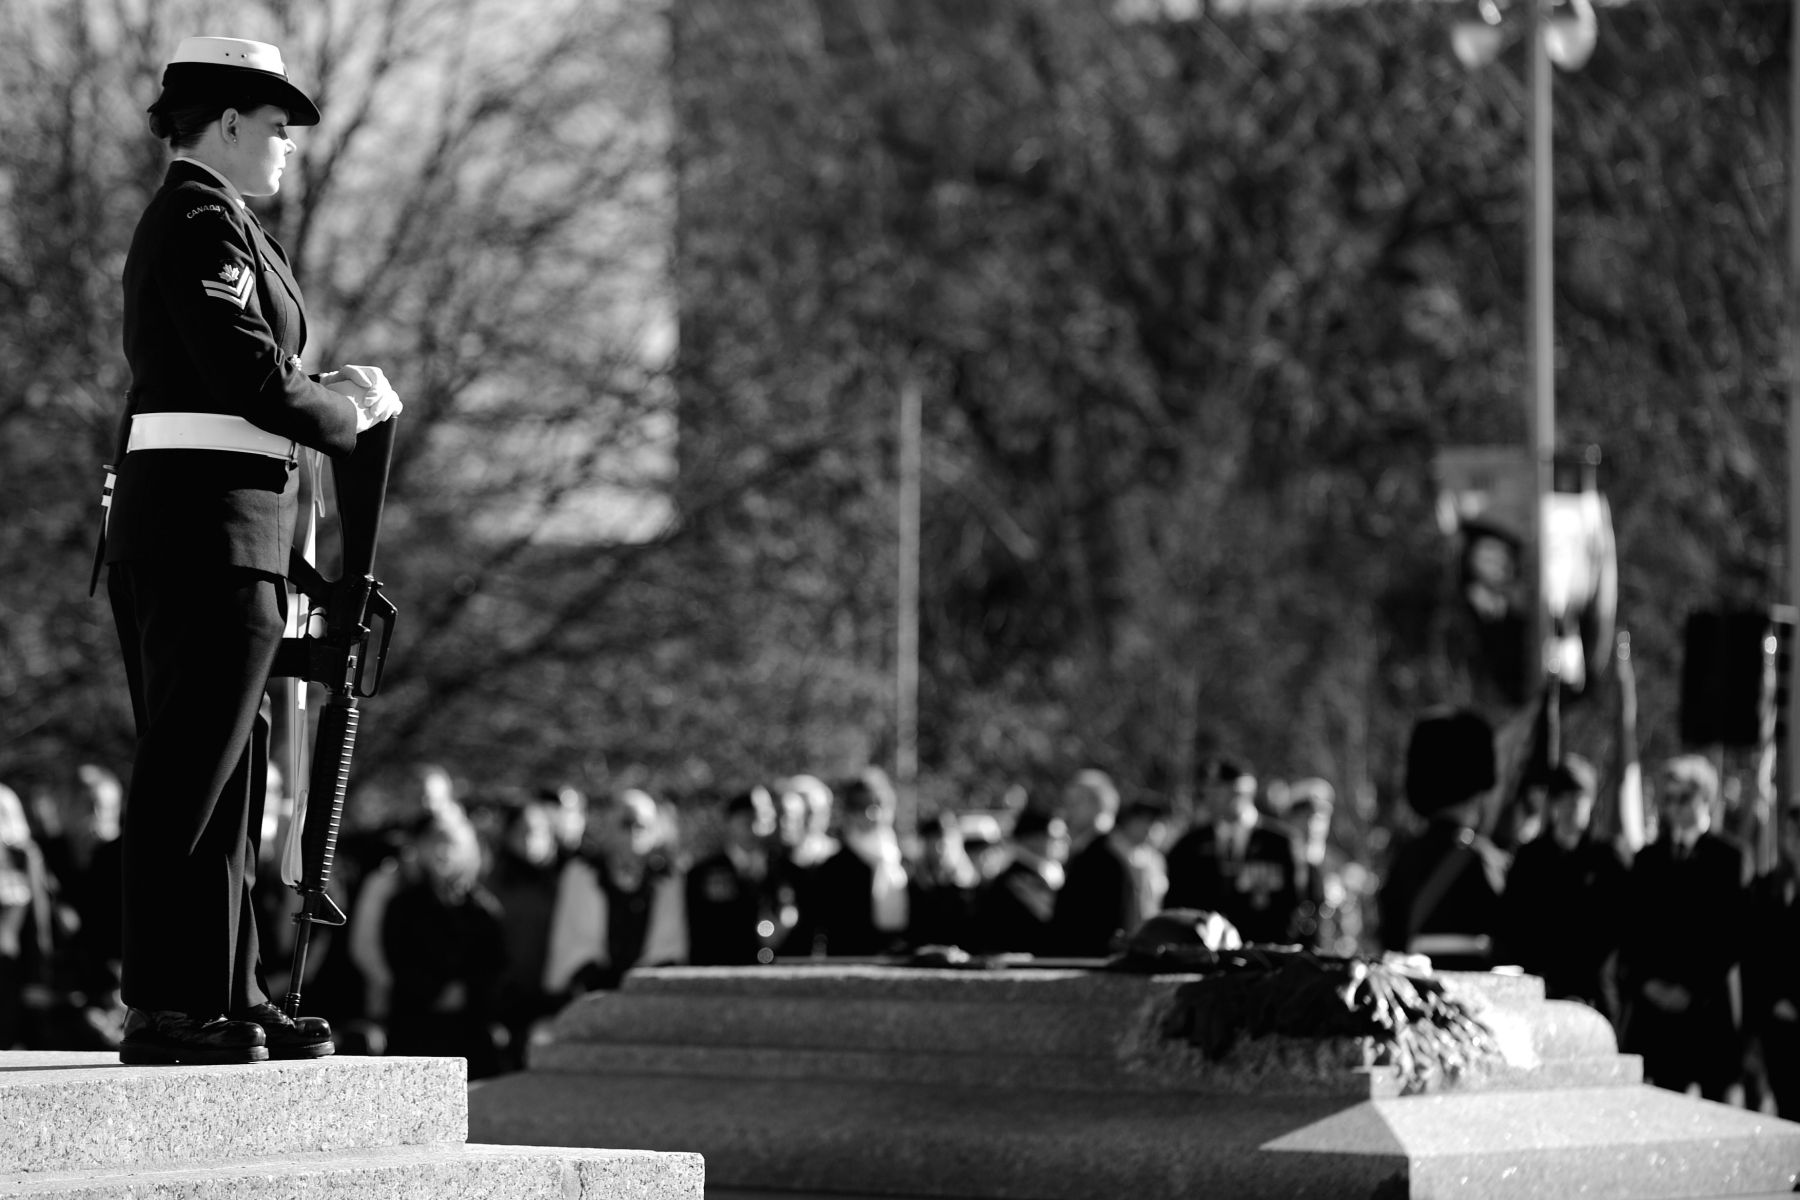 Throughout the ceremony, a sentry stands near the Tomb of the Unknown Soldier. The Unknown Soldier represents the more than 116,000 Canadian men and women who have died in the service of their country, and in particular the more than 28,000 who have no known resting place.